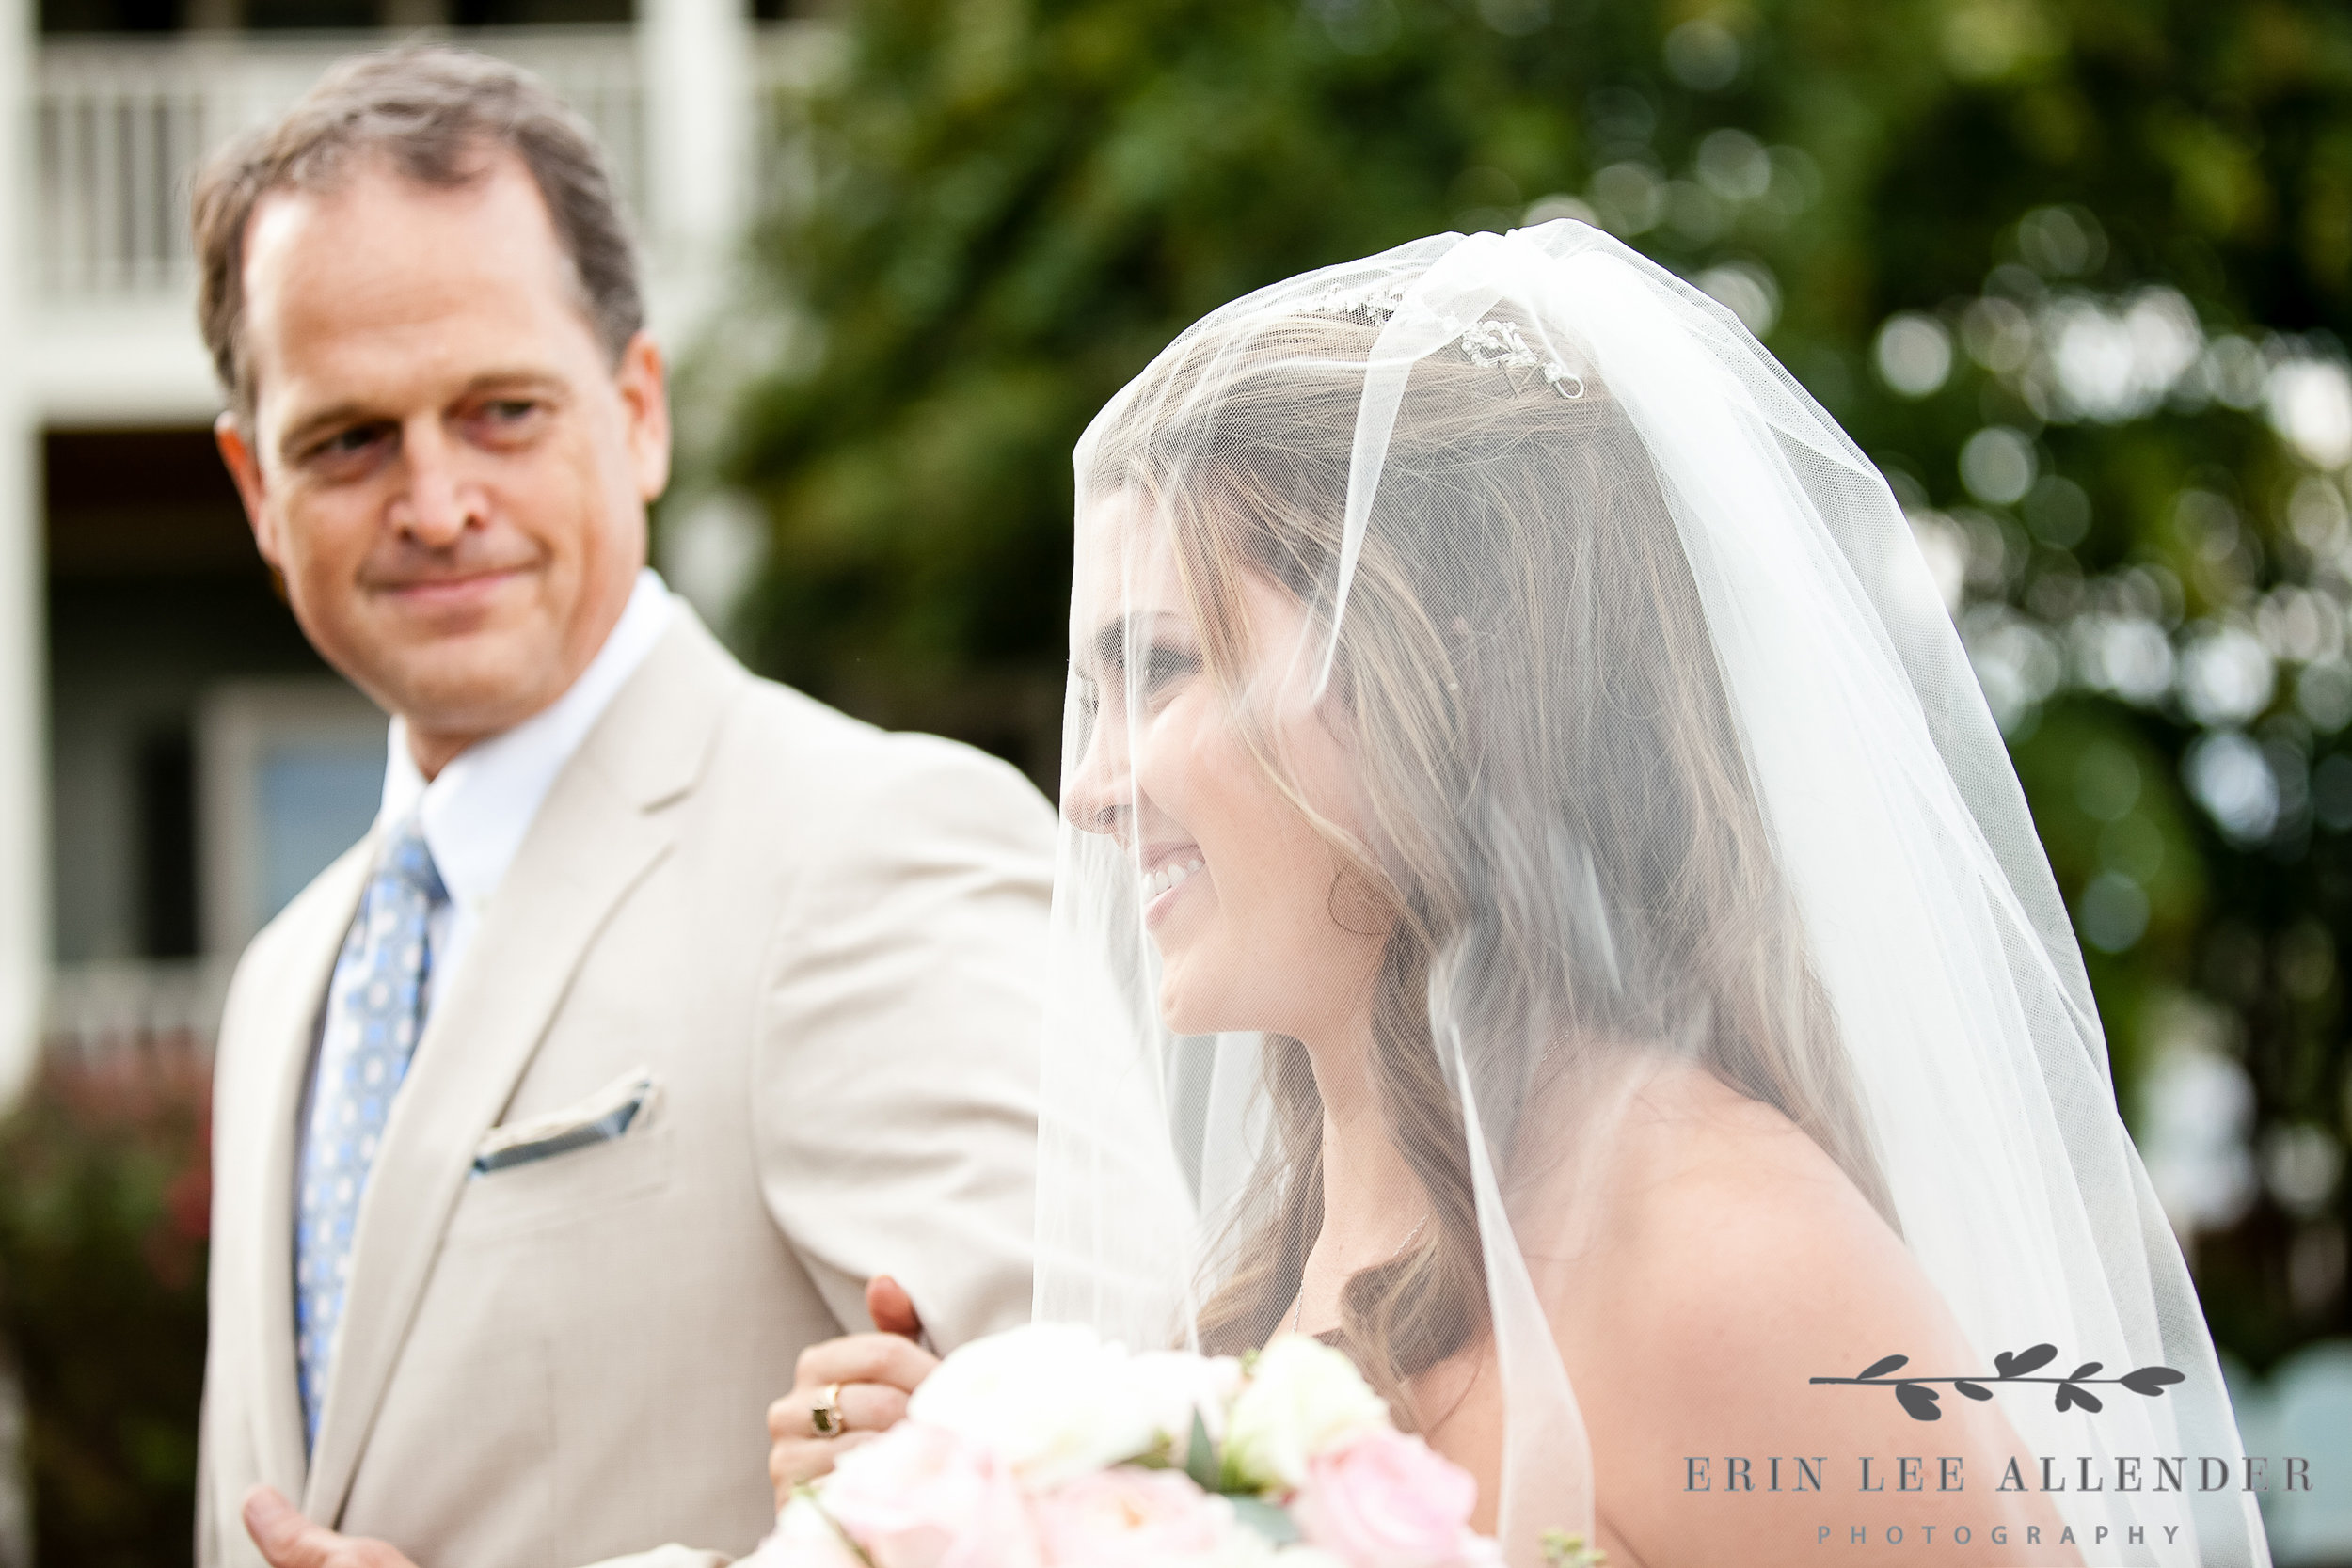 Dad_Looks_At_Bride_ When_ He_Walks_Her_Down_The_Aisle